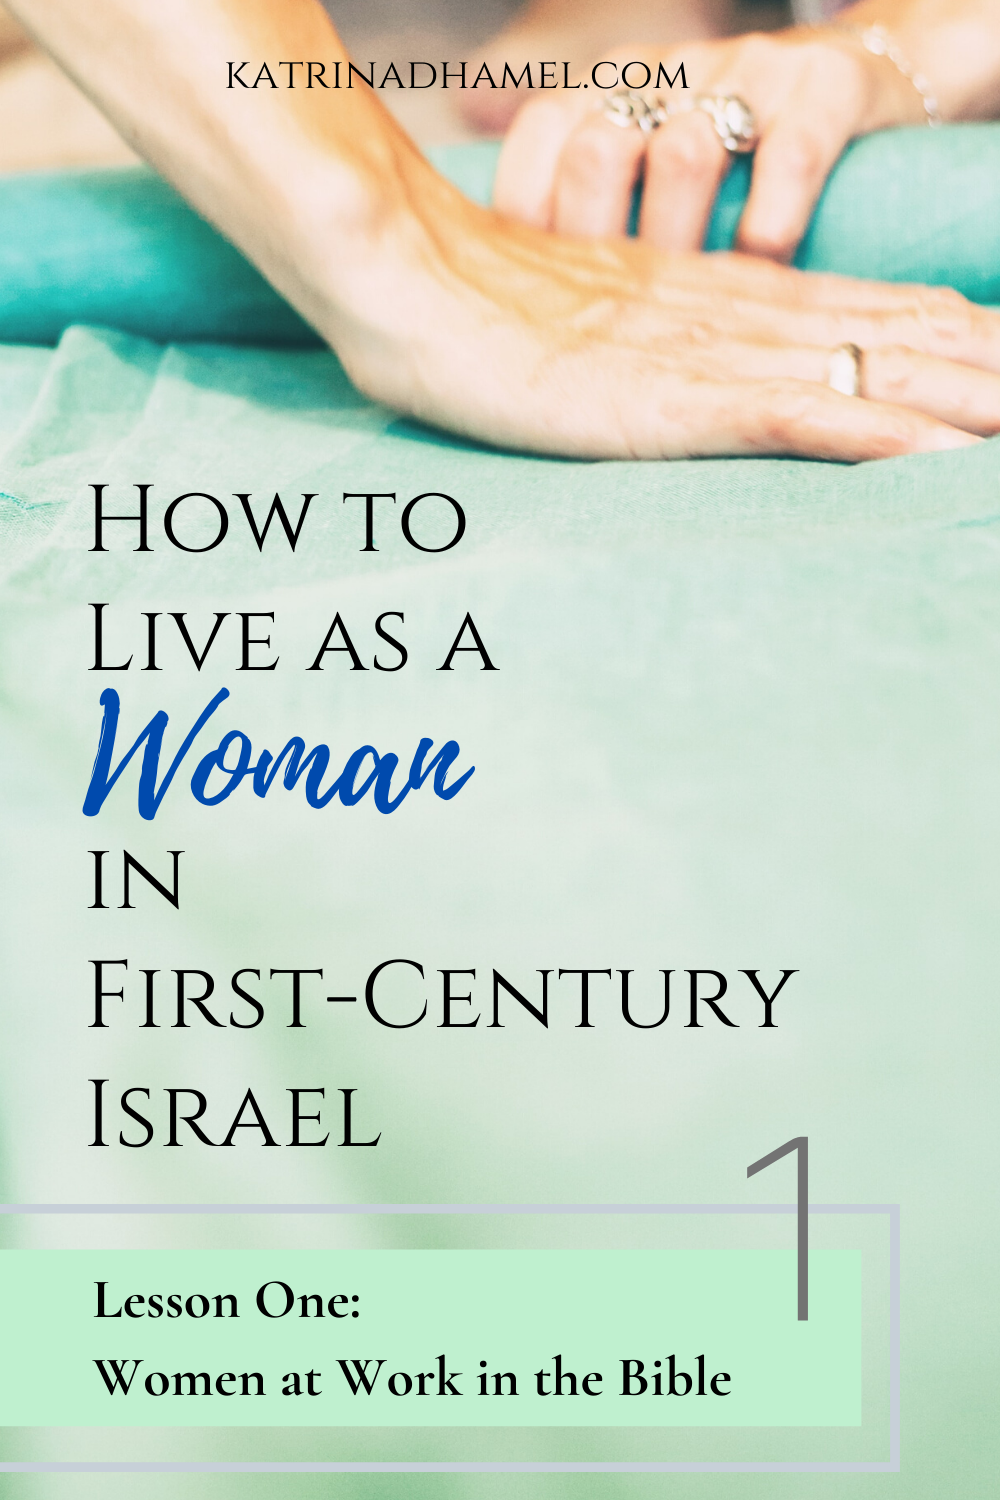 Two hands with rings smoothing a roll of pale blue cloth and the text 'How to Live as a Woman in First-century Israel, Lesson One: Women at Work in the Bible